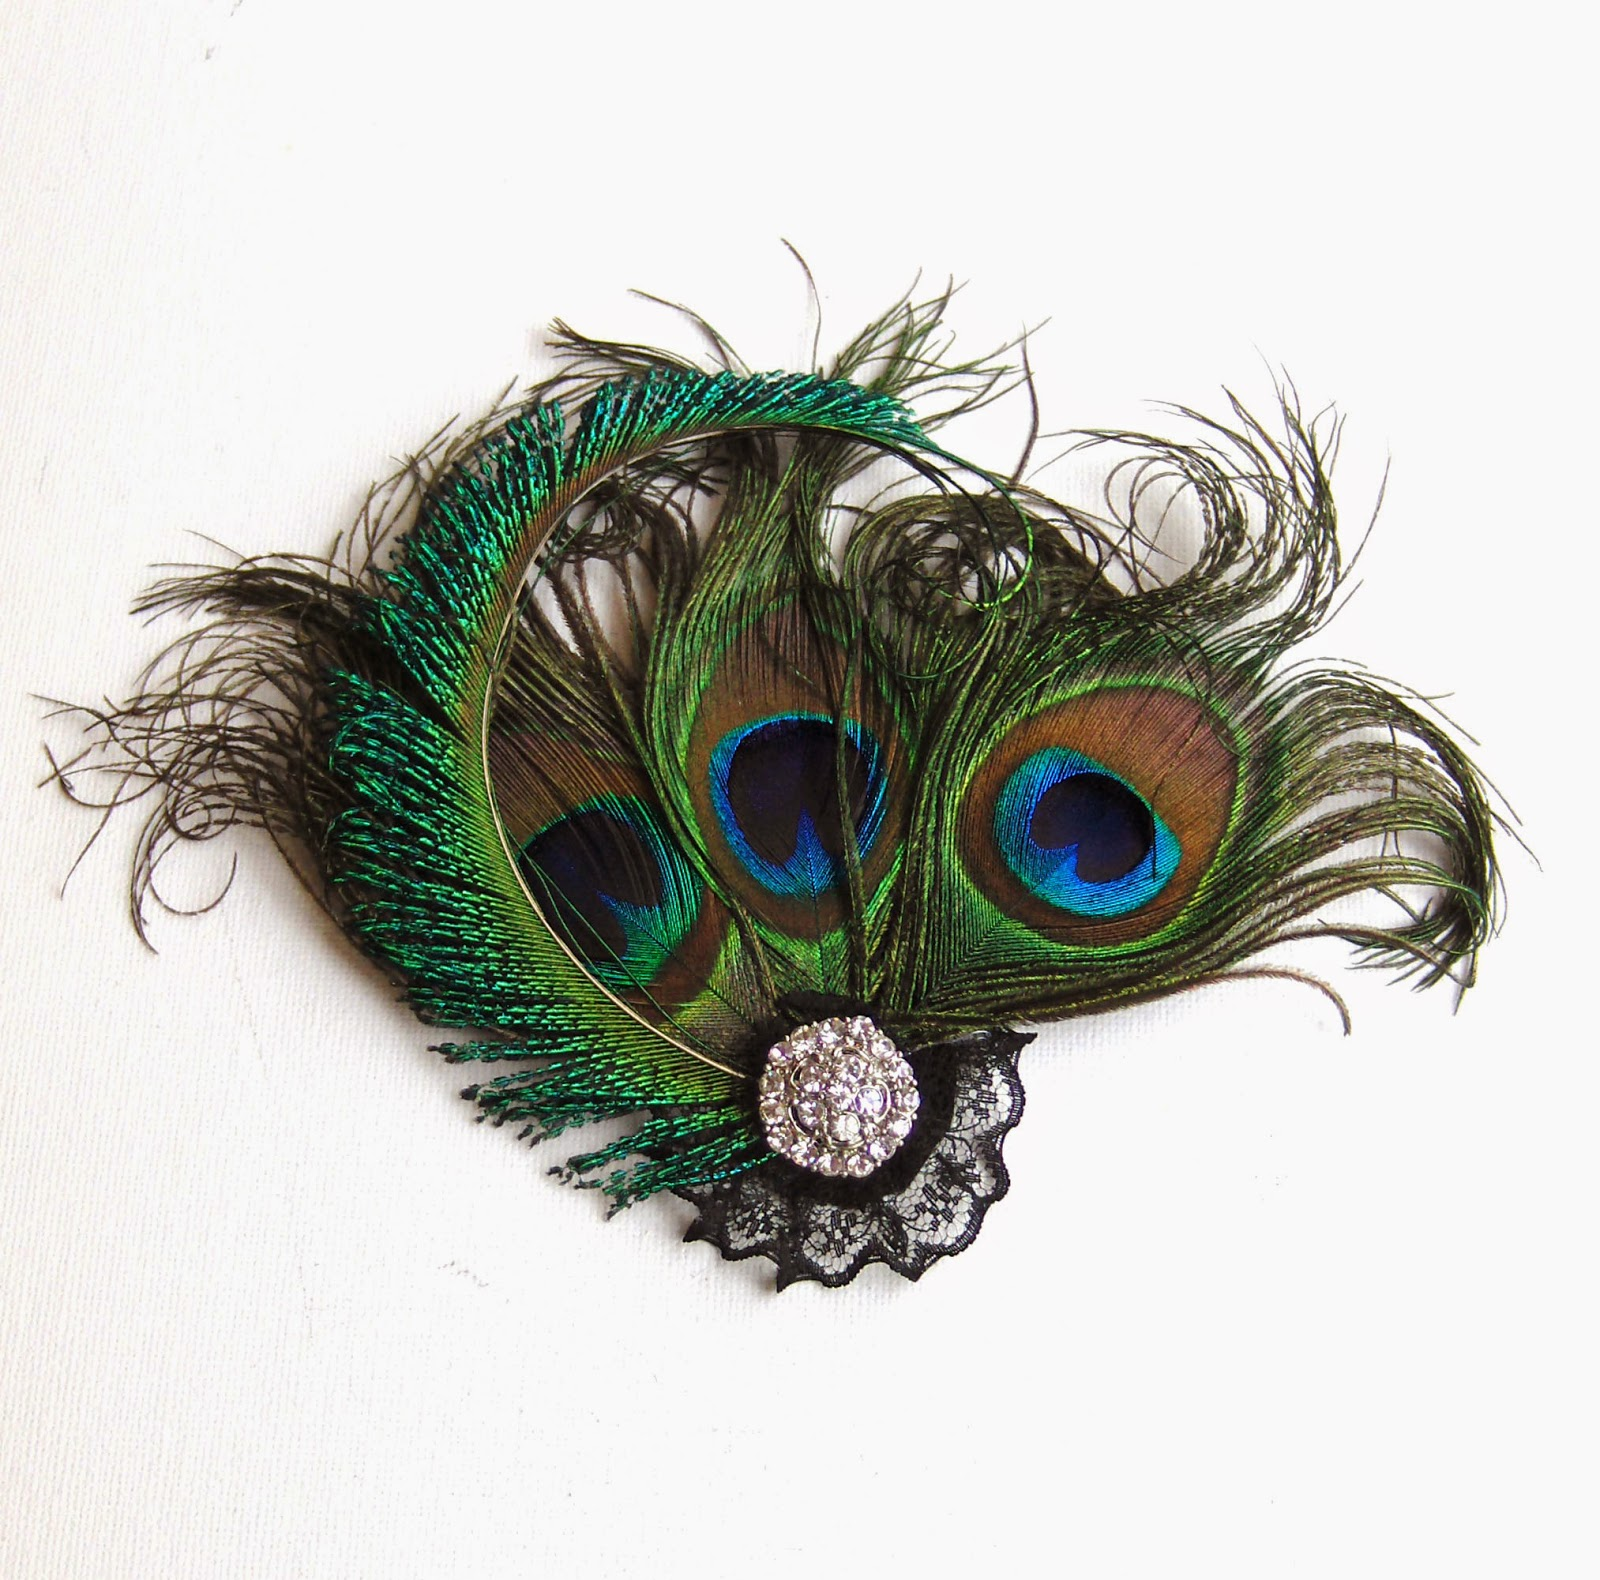 https://www.etsy.com/uk/listing/185174537/peacock-feather-rhinestone-fascinator-uk?ref=related-0